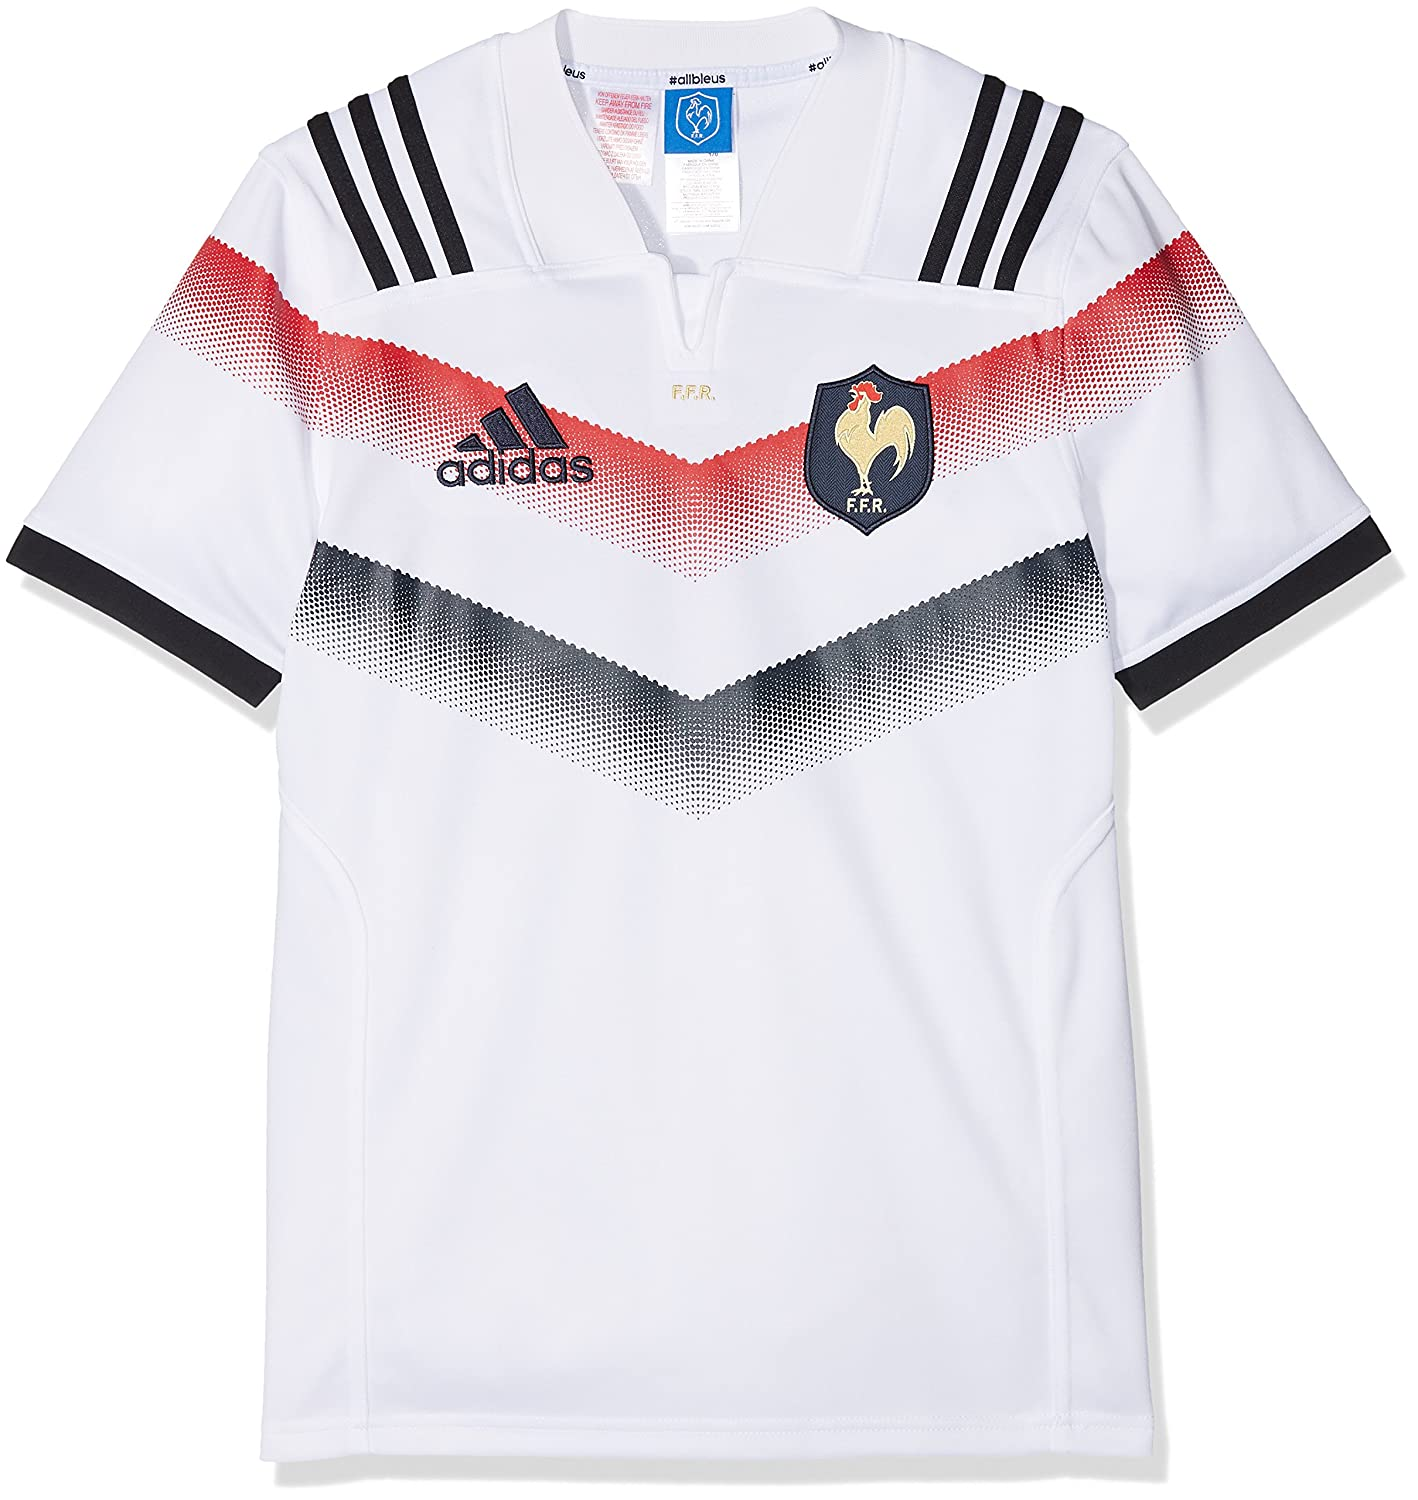 adidas Kinder Alternate Ffr Trikot BJ9359